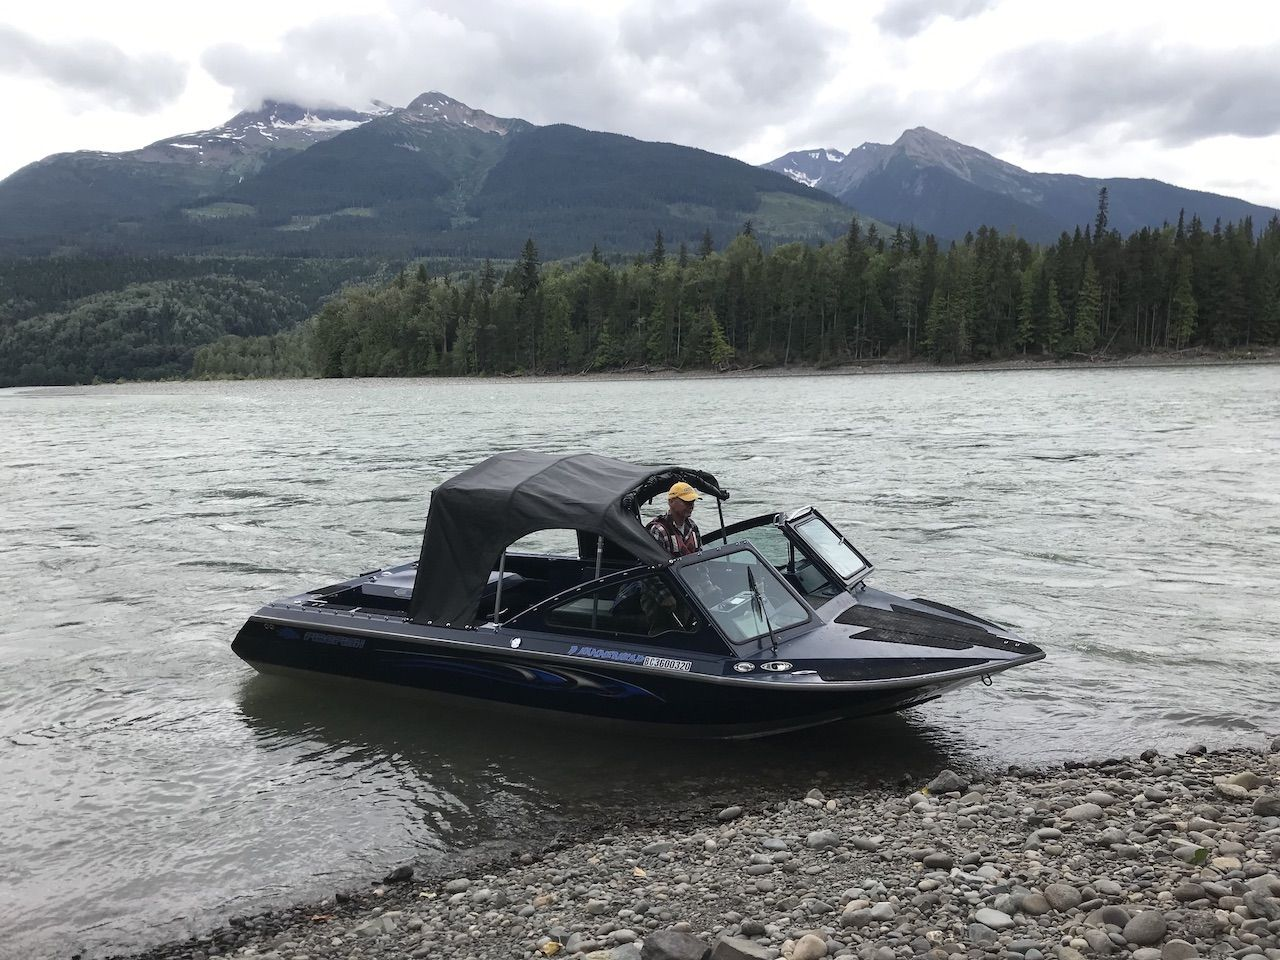 Matador Network - August 26, 2019For real adventure in British Columbia, head to The North READ ARTICLE >>THE SKEENA RIVER slices through northern British Columbia, serving as an important lifeline for the communities along its banks from the headwaters in the Spatsizi Plateau until it spills into the Pacific Ocean 350 miles downstream. The Skeena's deep turquoise water contrasts with the bright riverside flora and the dark, earthy hues of the Babine Range peaks beyond.